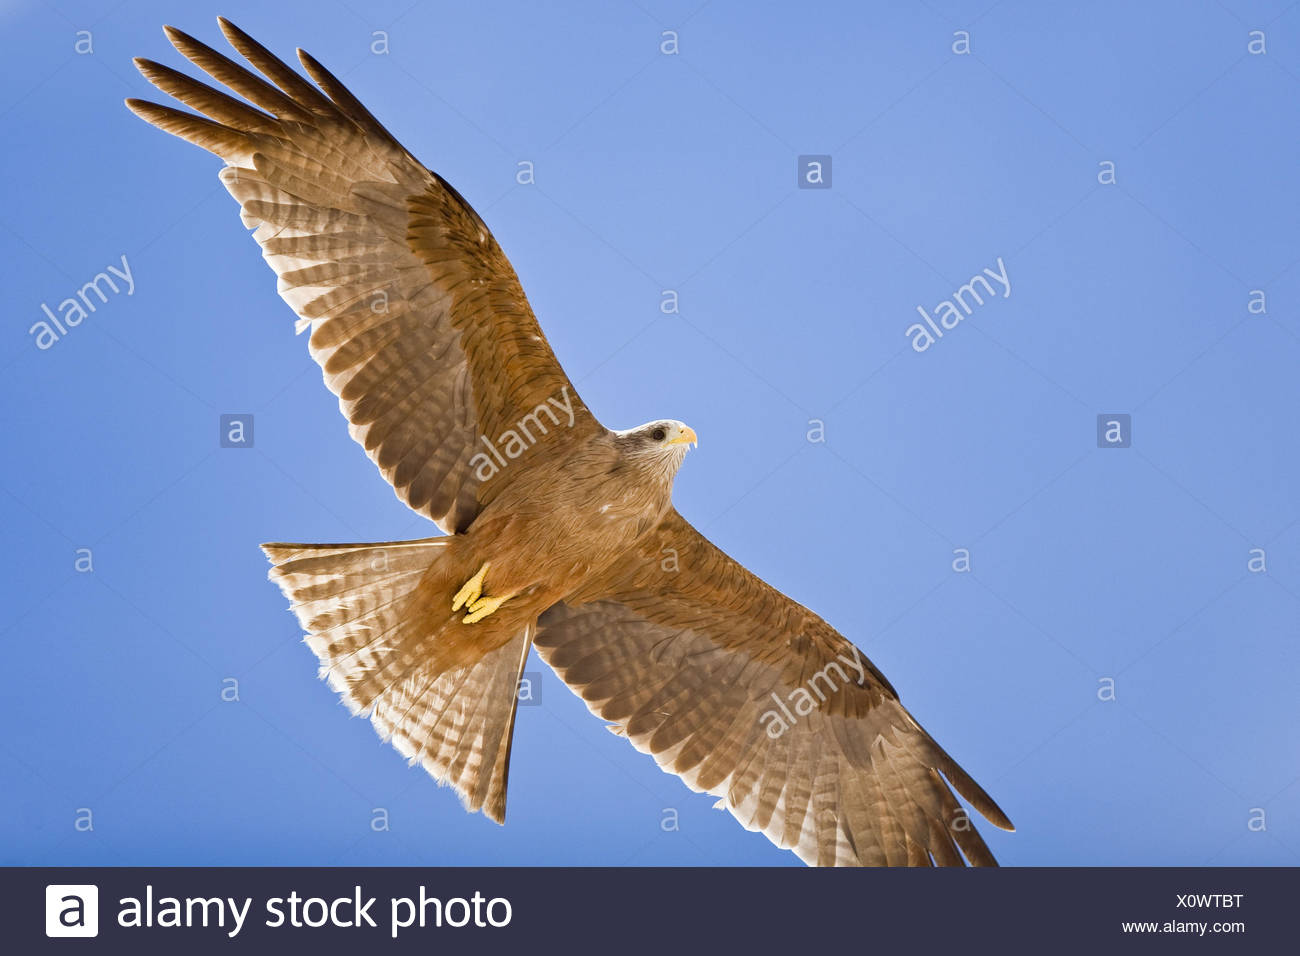 Africa, Namibia, bird prey, flight, from below, - Stock Image